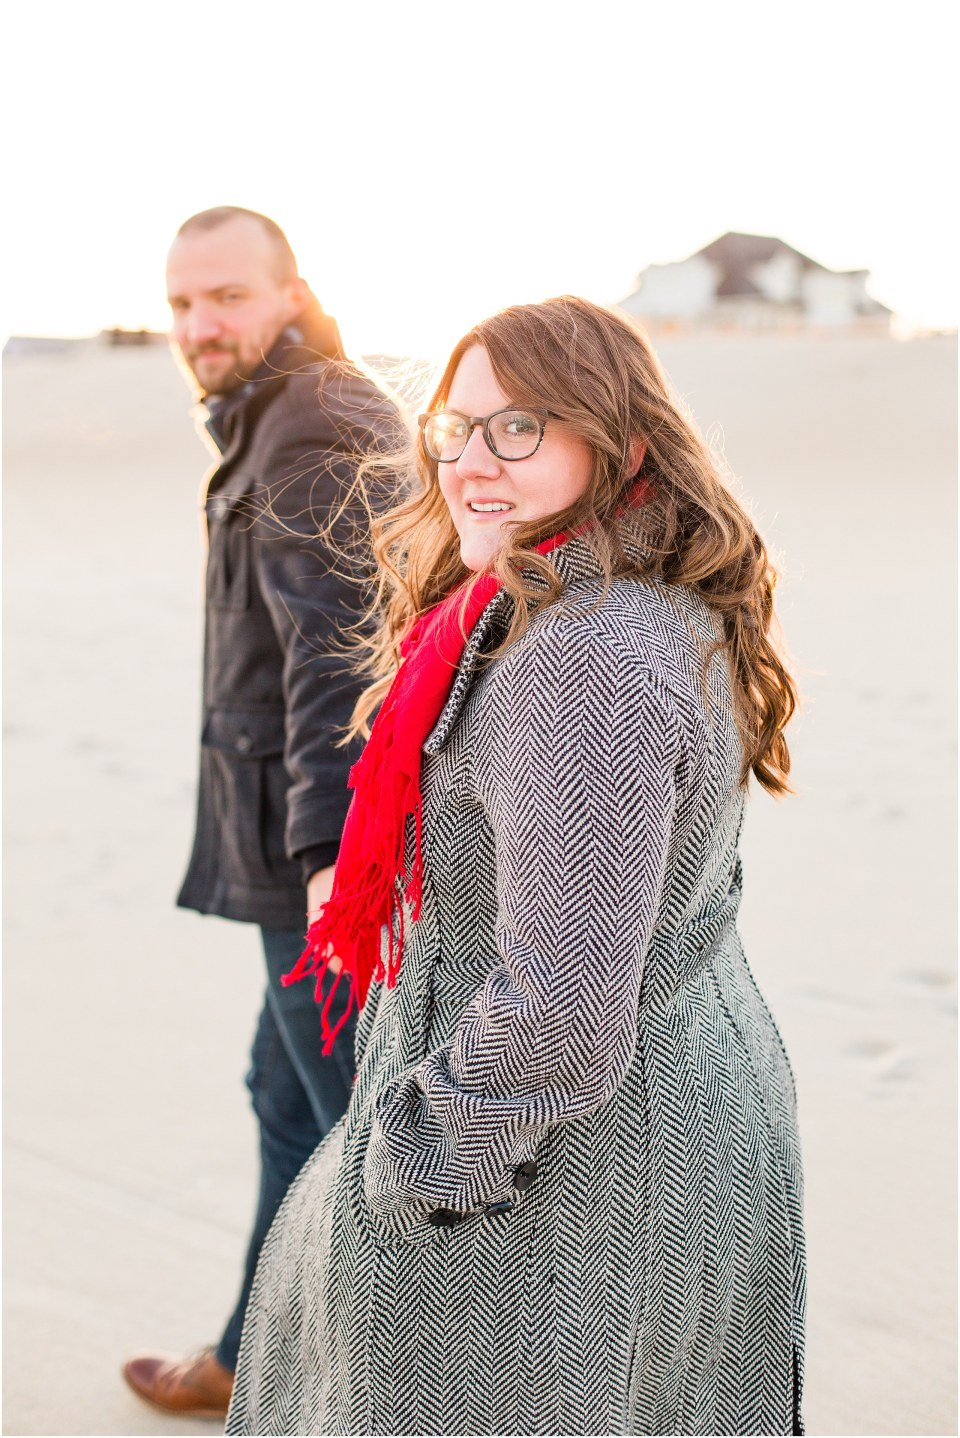 Will & Christen's Winter Beach Engagement at Spring Lake, New Jersey Photos_0025.jpg